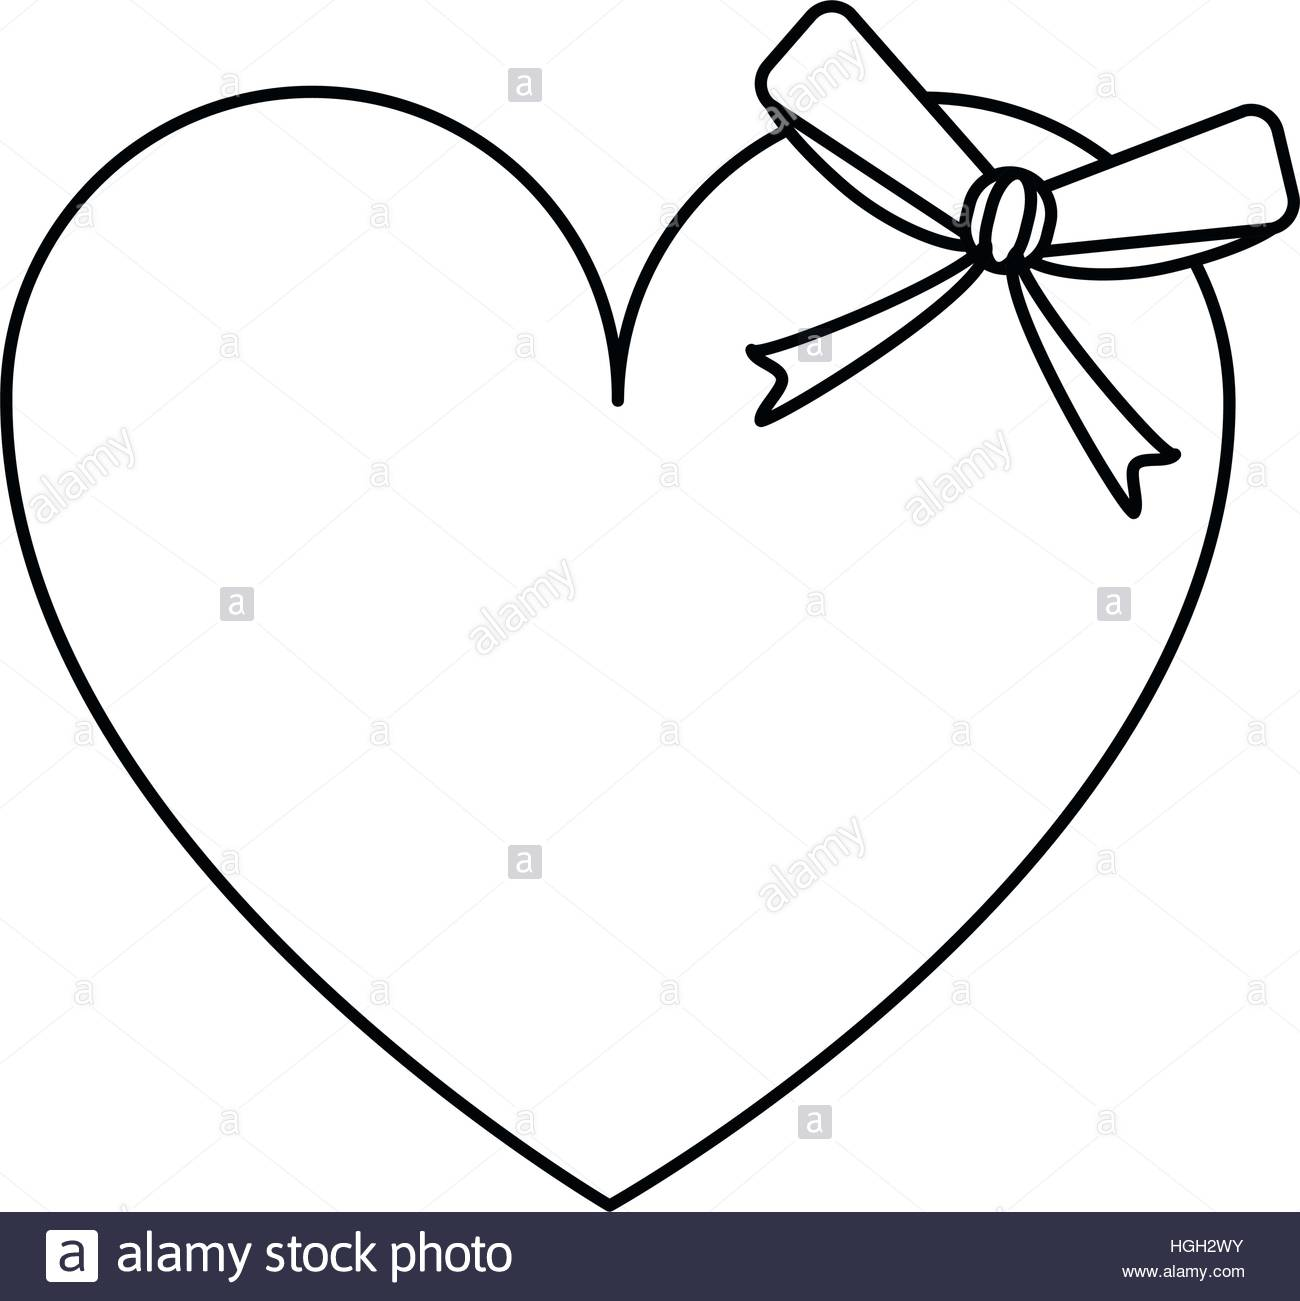 1300x1301 Cute Love Heart Passion With Bow Line Stock Vector Art